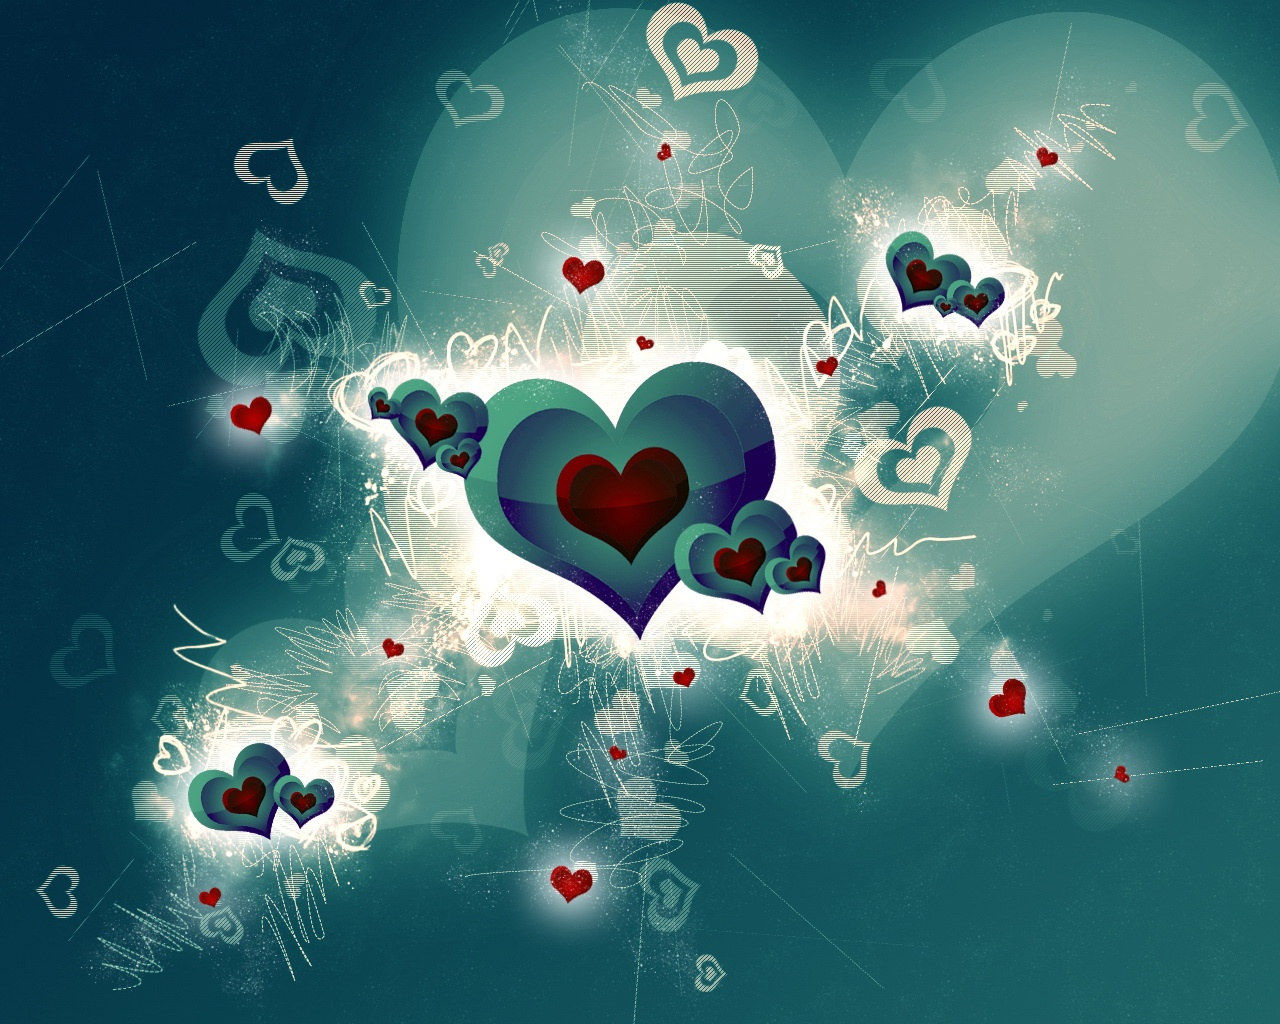 Love Wallpaper Wallpapers For Free Download About Wallpapers Love